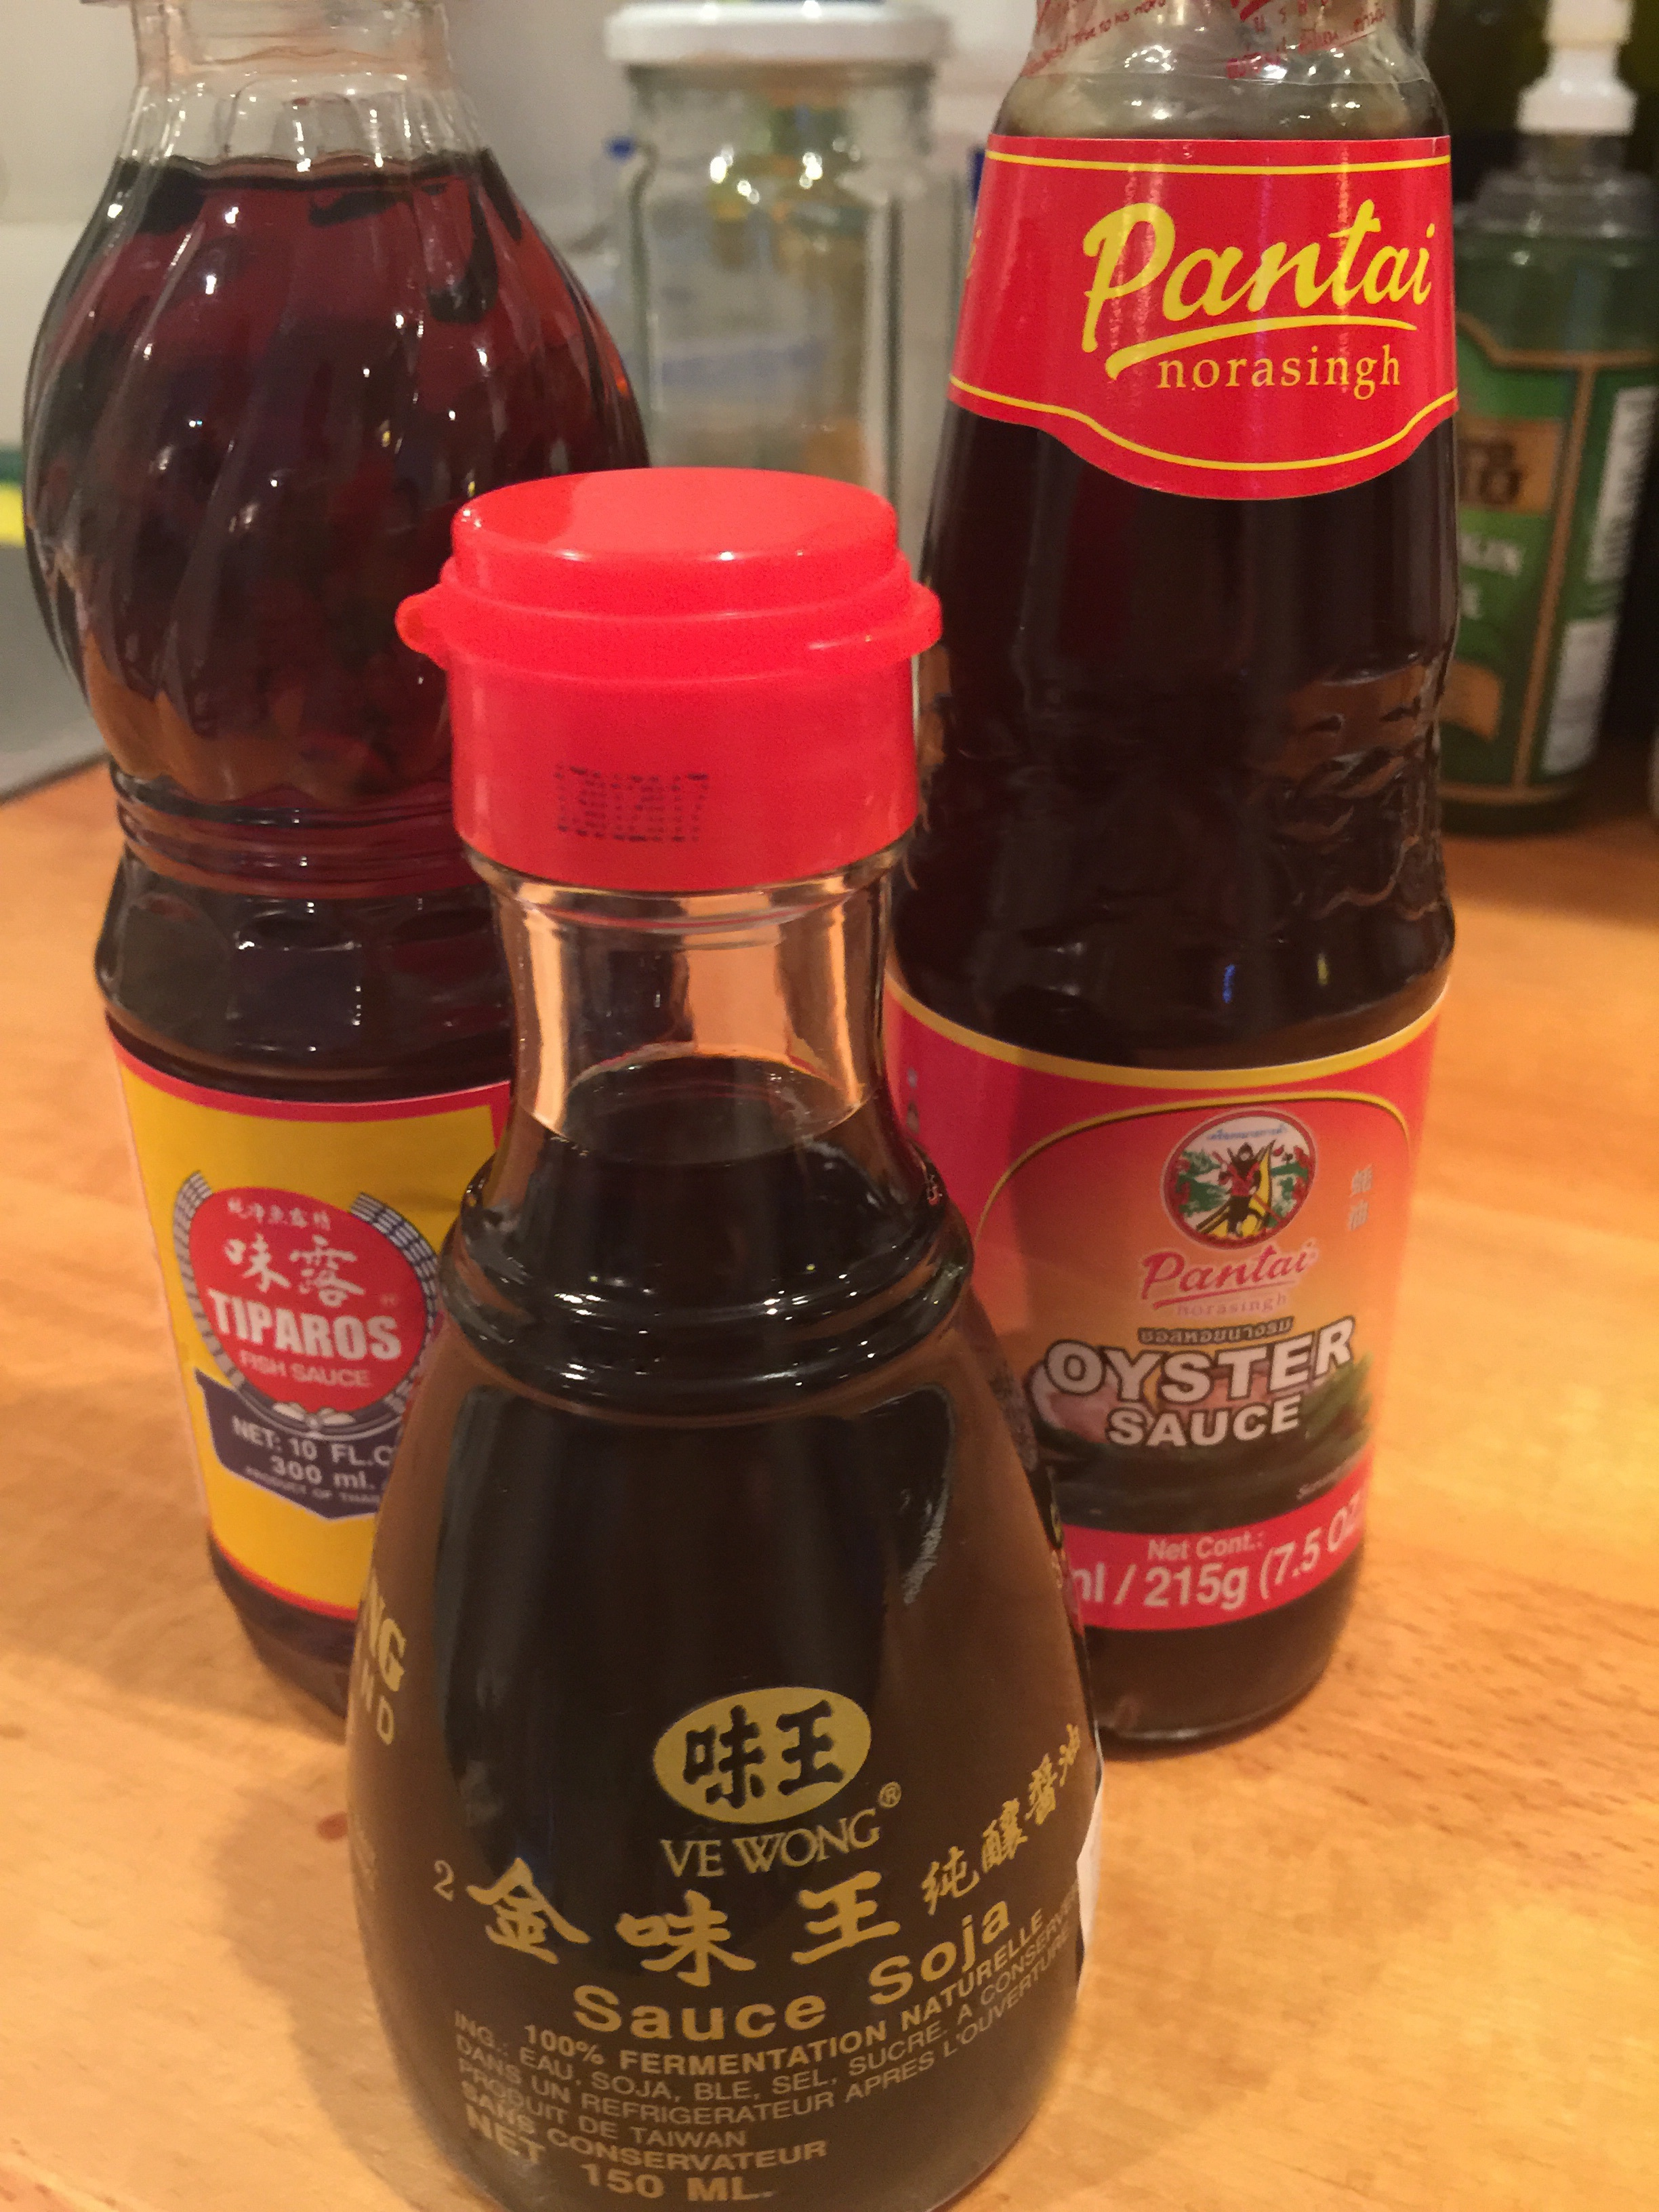 Oyster sauce, soy sauce, fish sauce, All unopened and in date